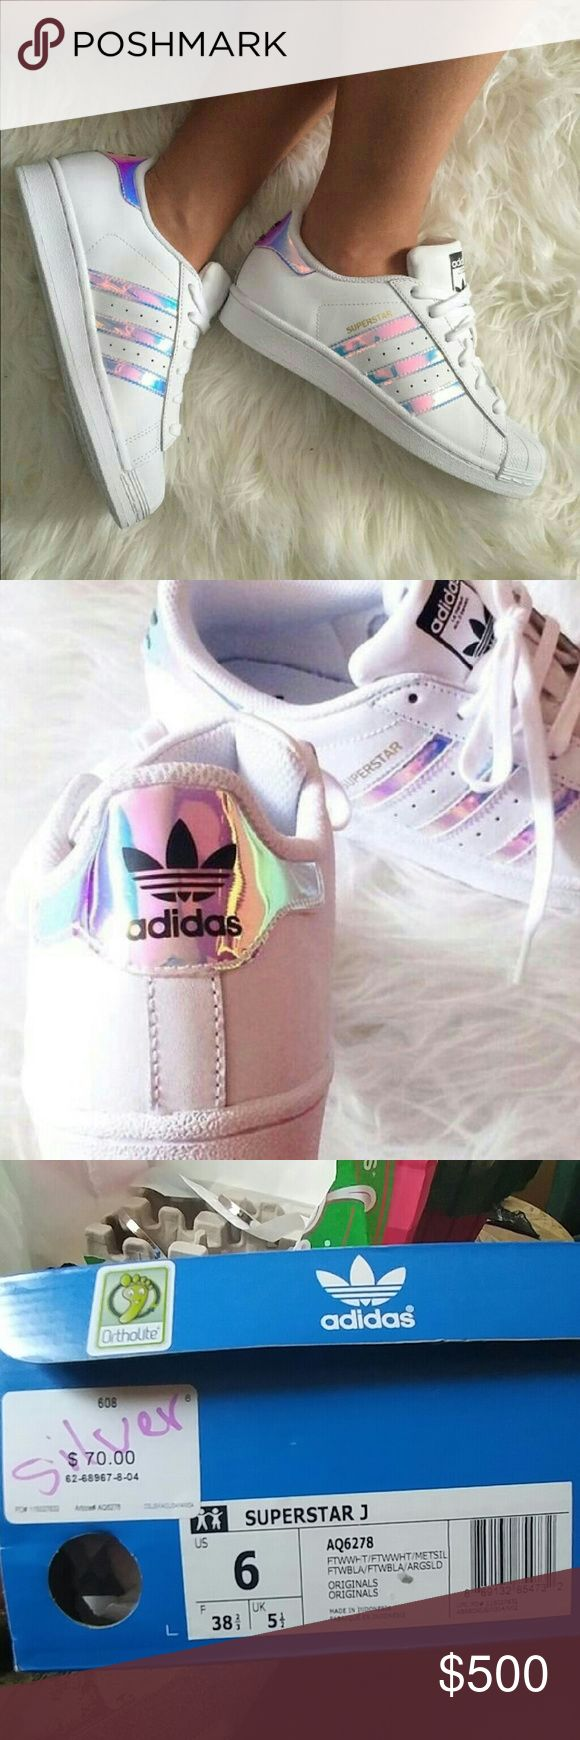 RARE adidas superstar iridescent new in box adidas. Sold out. Size 6 kids-8 womens. No trades no low balls. Open to offers, only letting go for a good price. ?? Adidas Shoes Sneakers